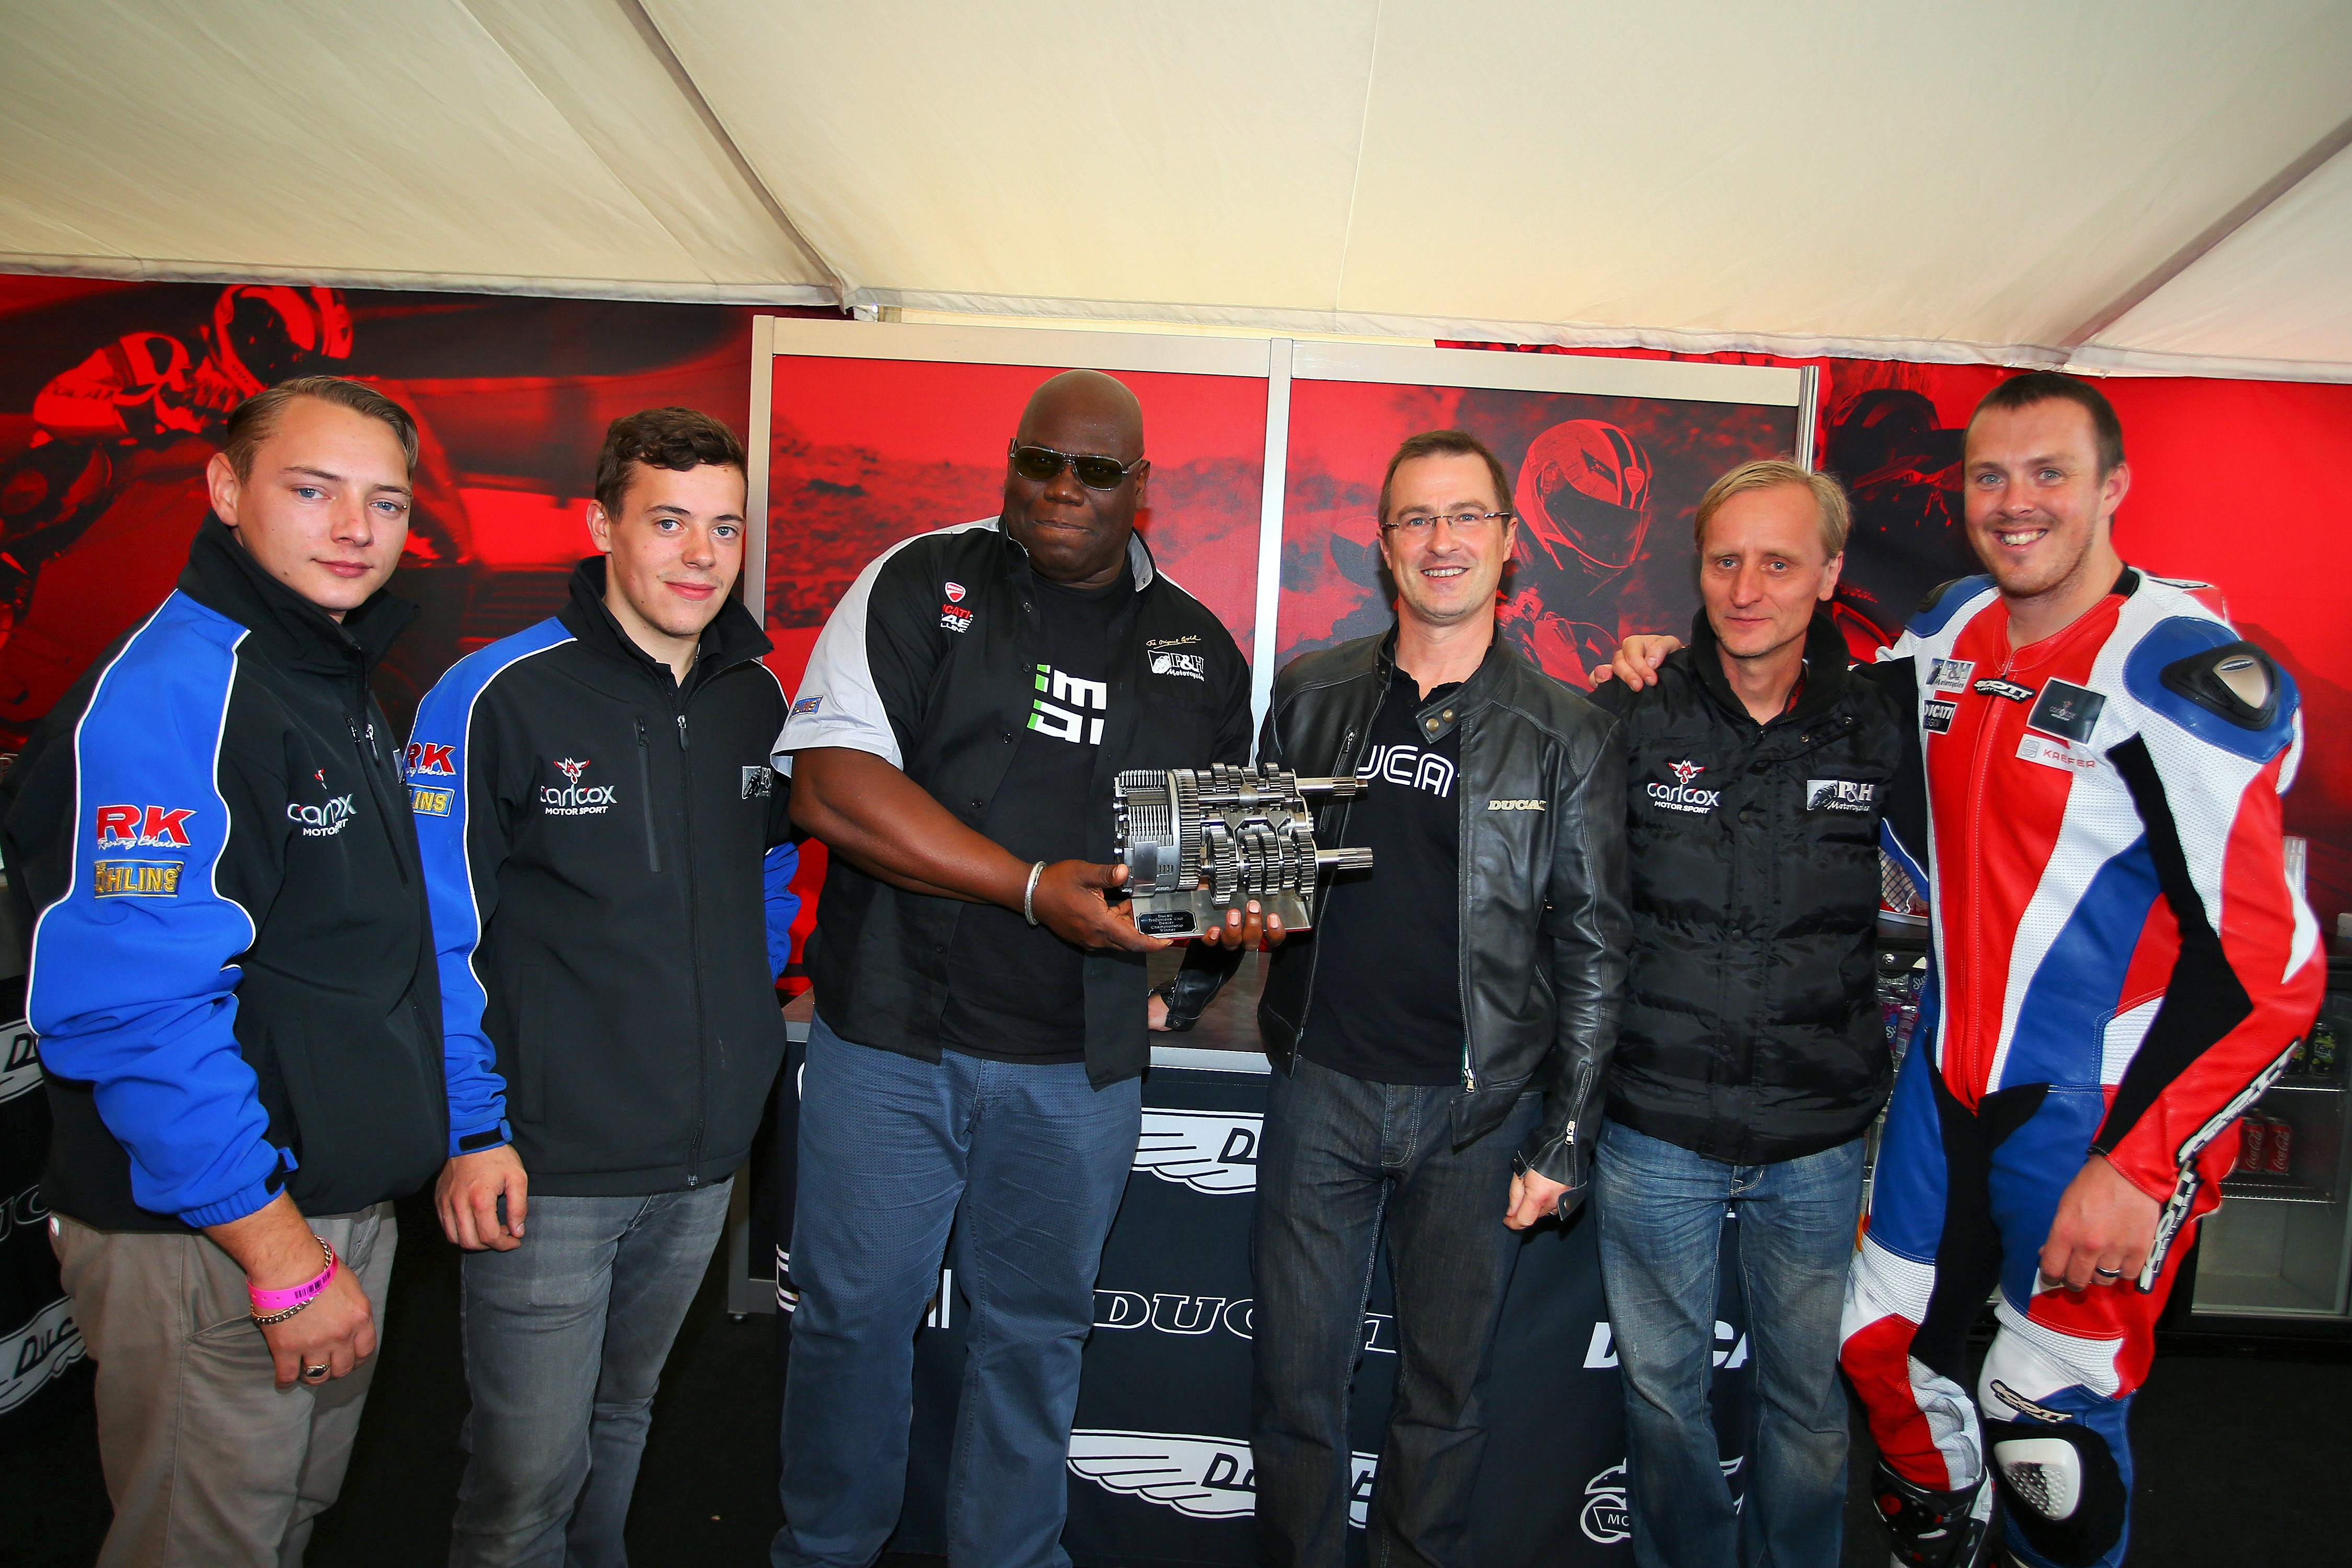 P&H-Motorcycles-win-the-Ducati-Trioptions-Cup-team-award.JPG